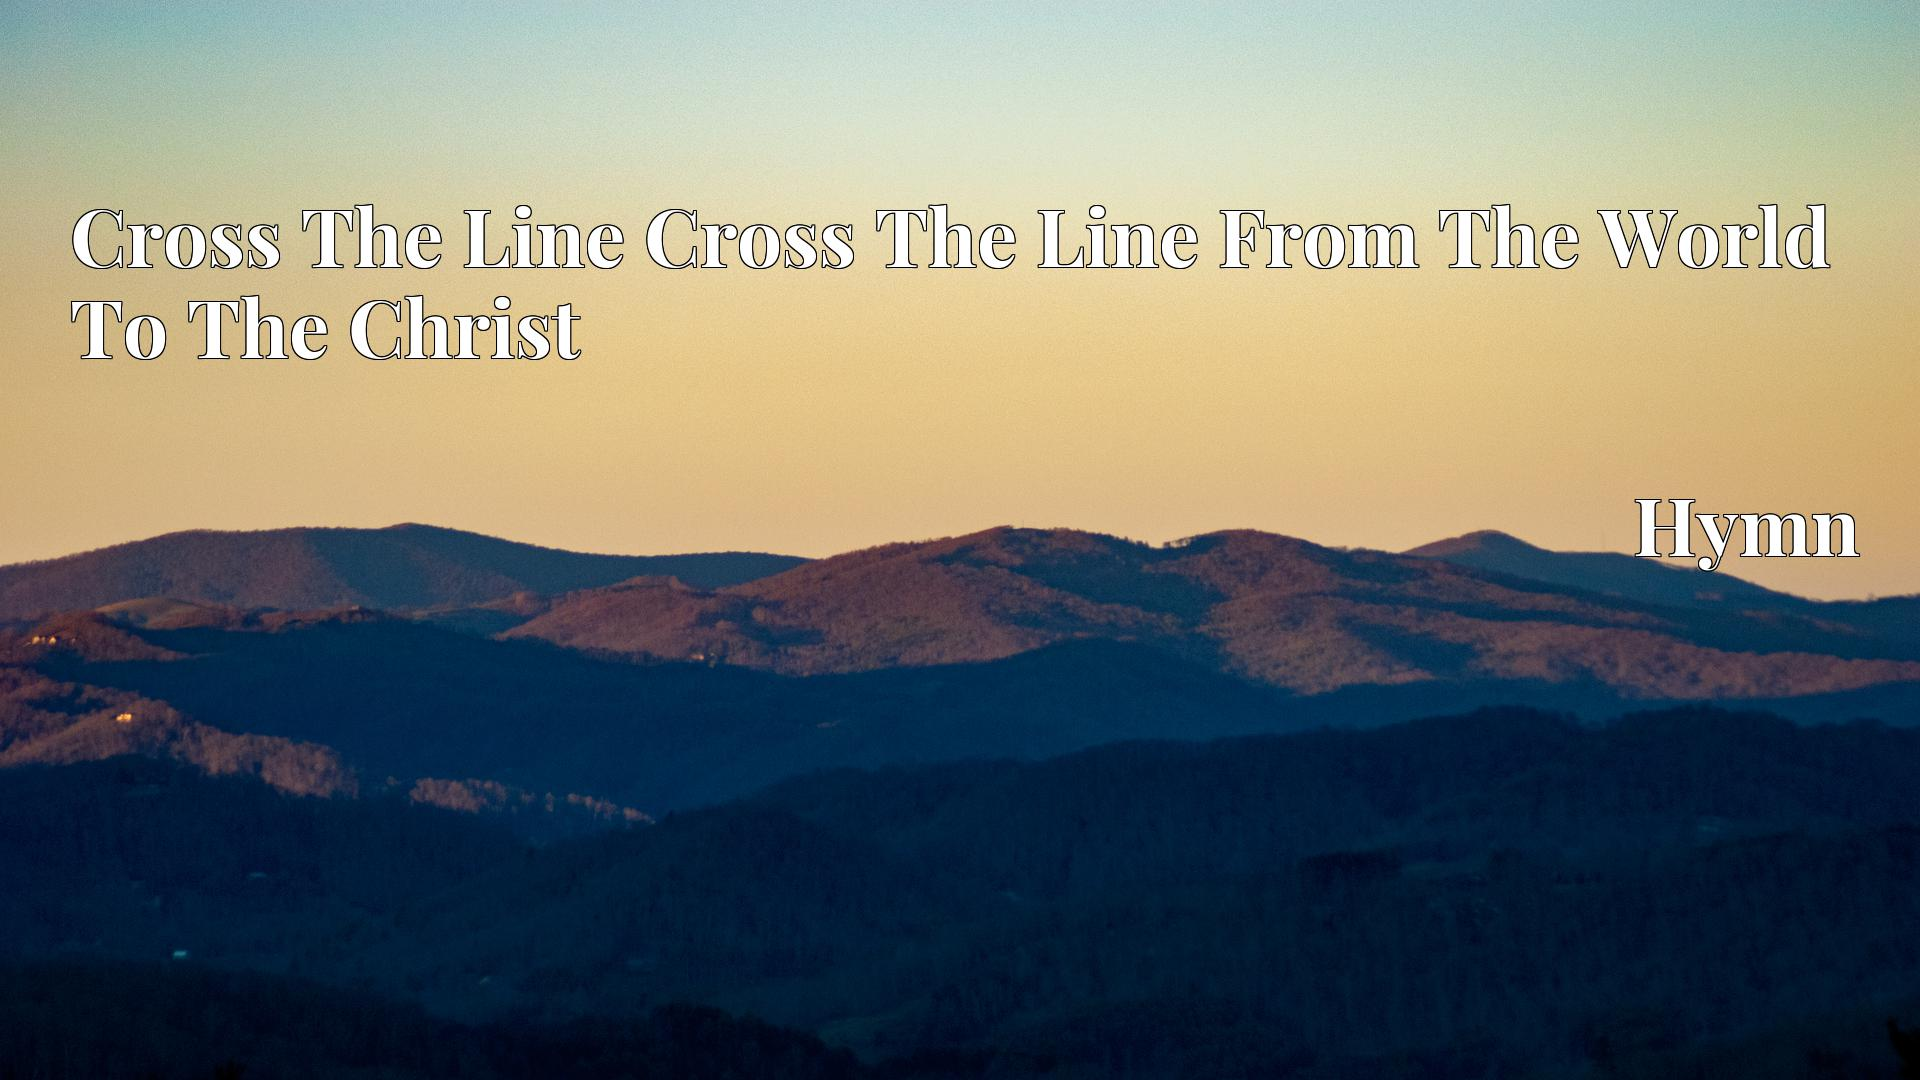 Cross The Line Cross The Line From The World To The Christ - Hymn